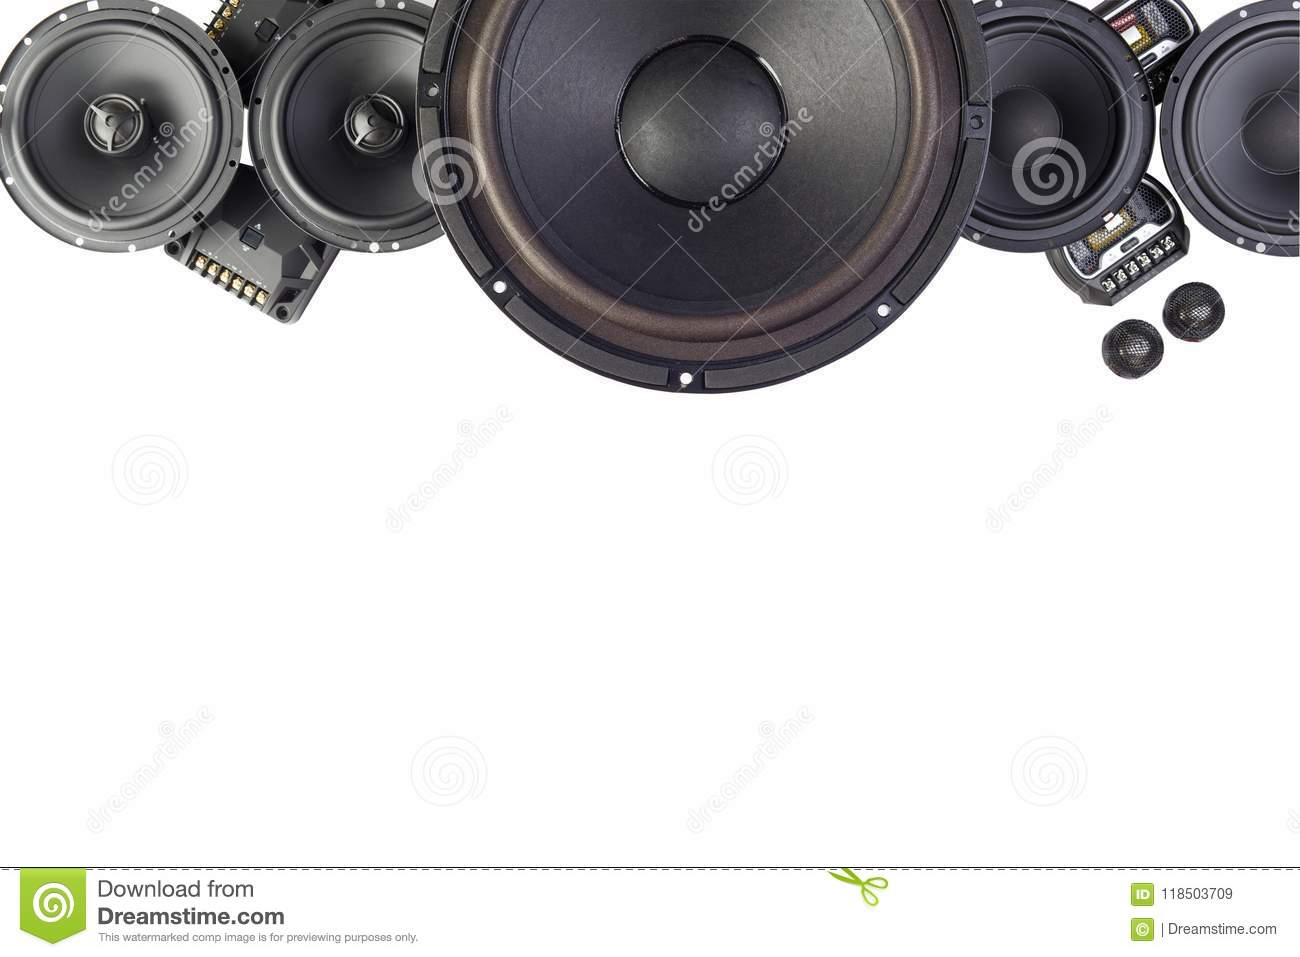 6 456 Car Audio Photos Free Royalty Free Stock Photos From Dreamstime